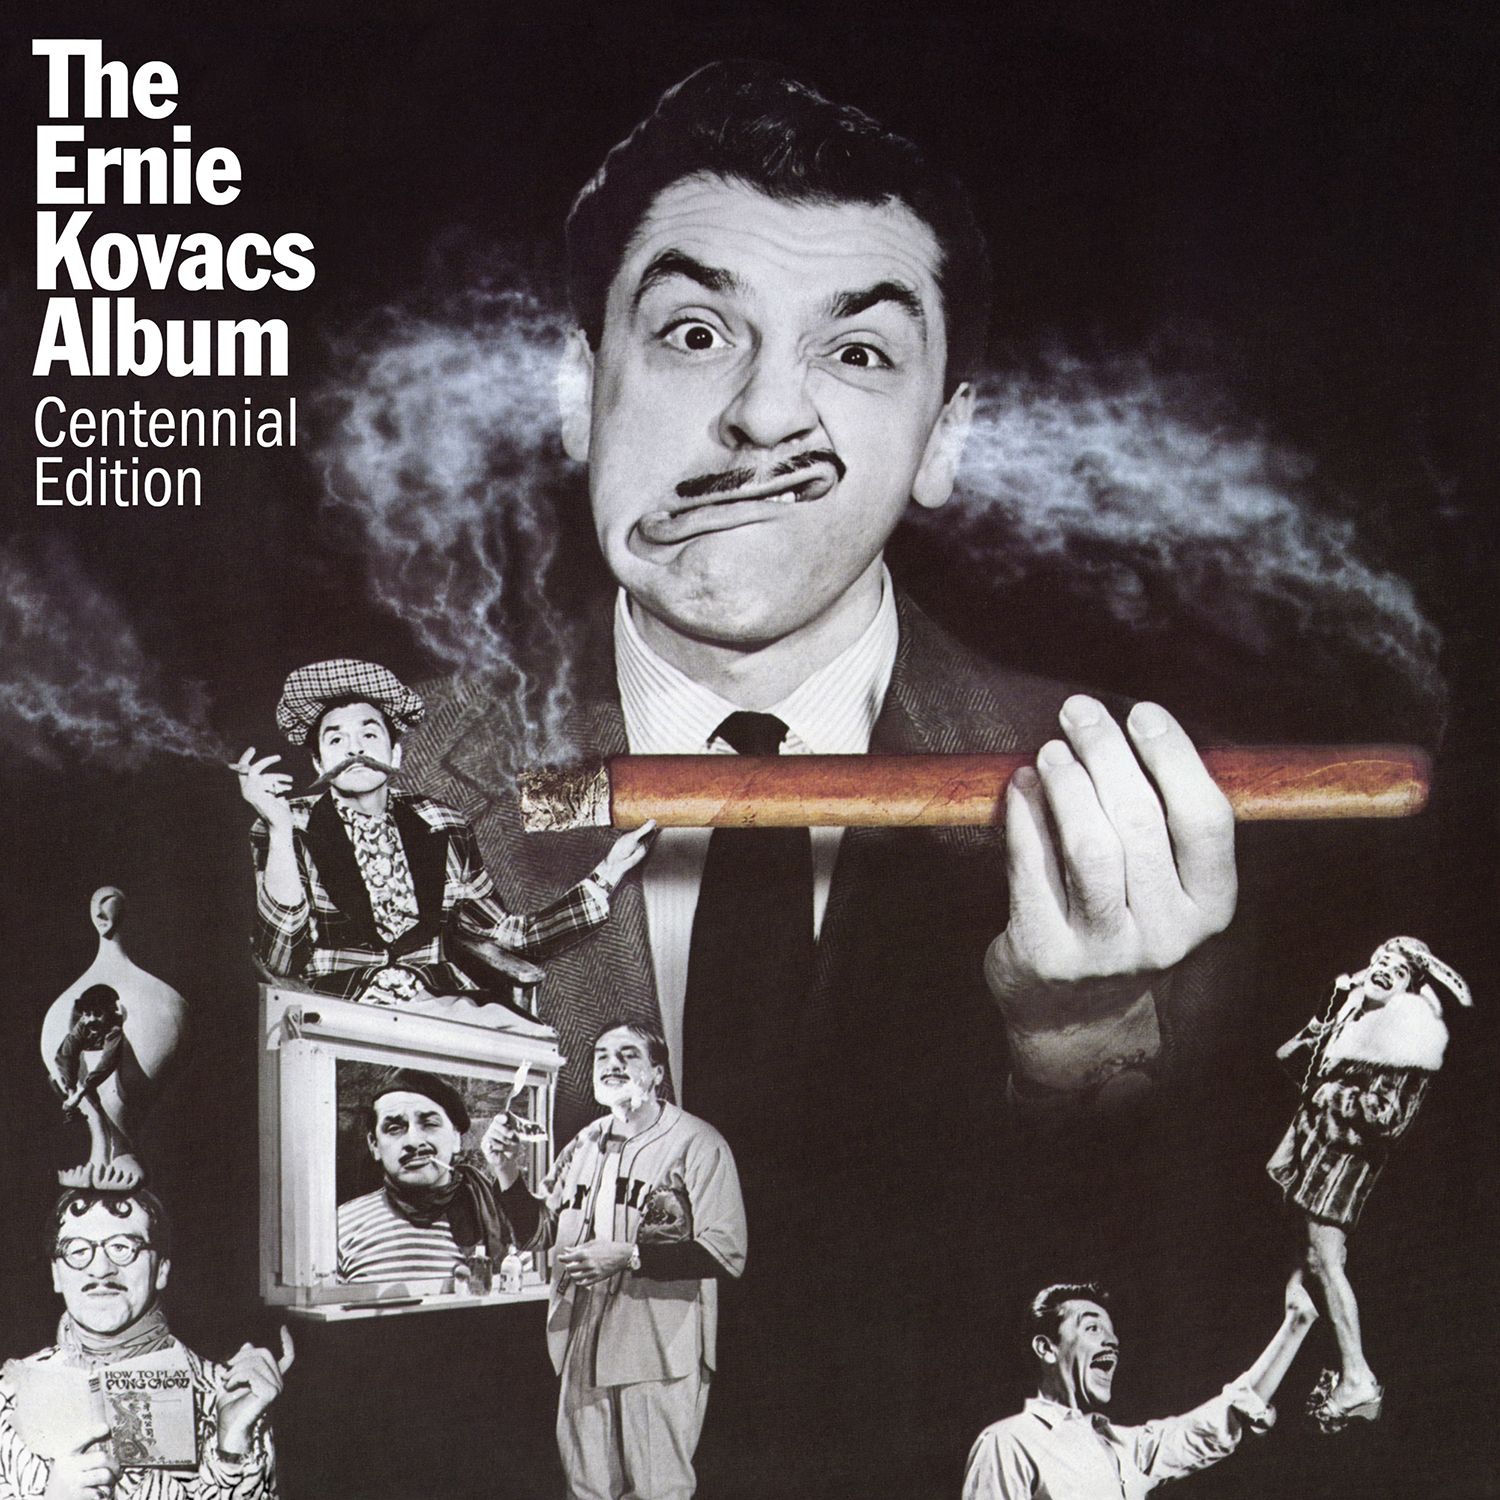 Ernie Kovacs - The Ernie Kovacs Album: Centennial Edition  Release Date: June 7, 2019 Label: Omnivore Recordings  SERVICE: Mastering, Restoration NUMBER OF DISCS: 1 GENRE: Comedy FORMAT: CD